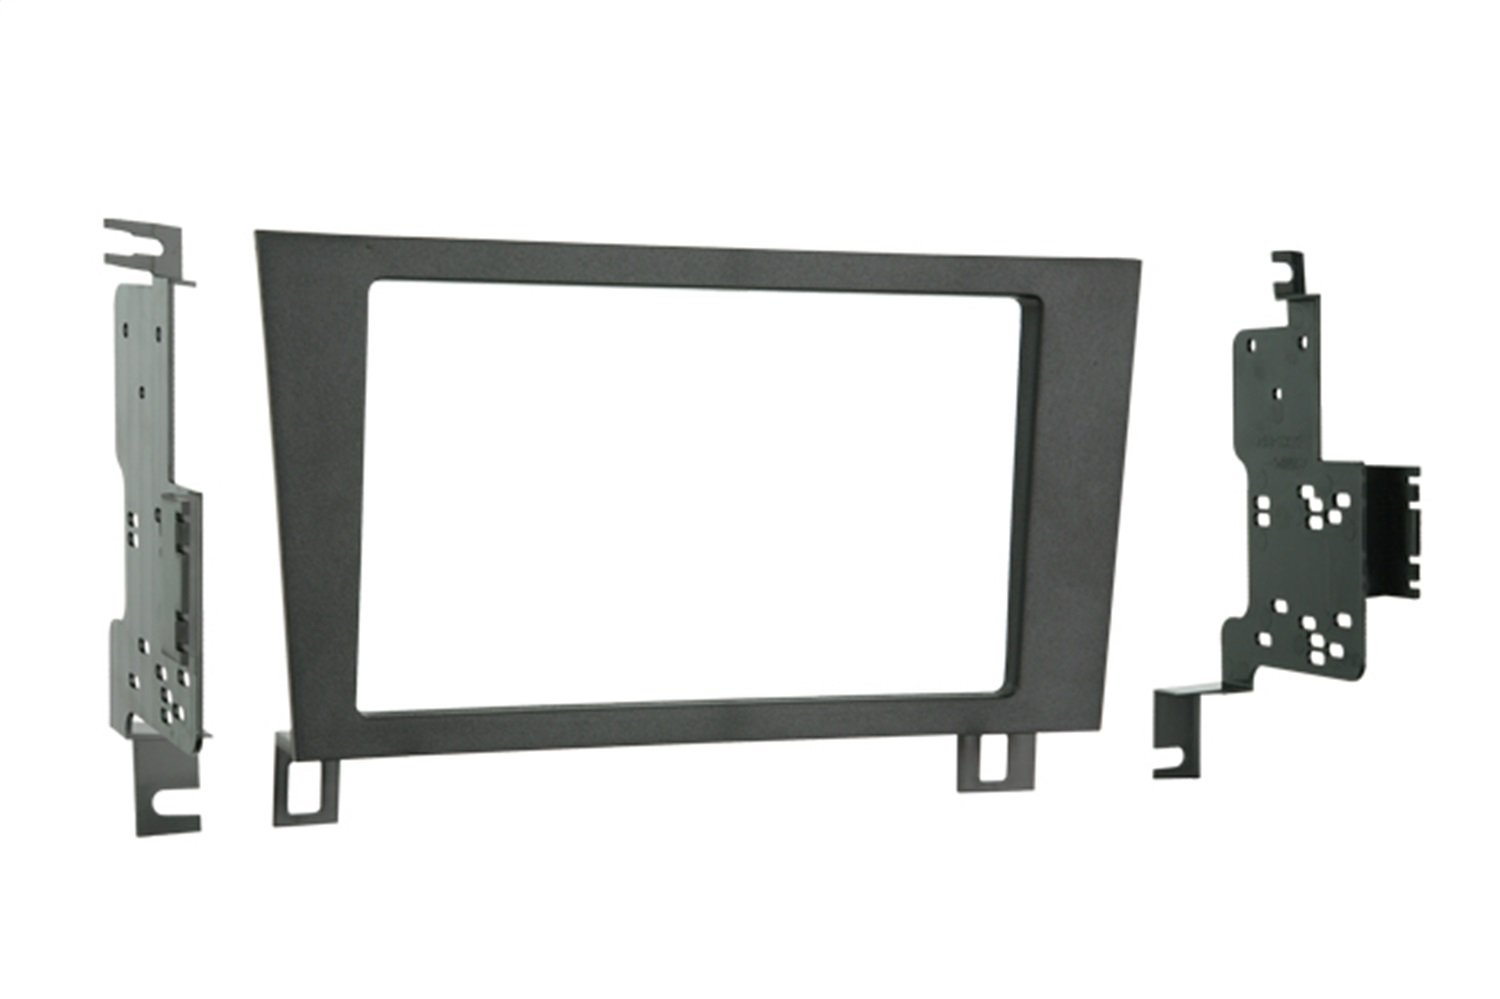 Metra 95-8154 Double DIN Installation Kit for 1993-1997 Lexus GS Vehicles